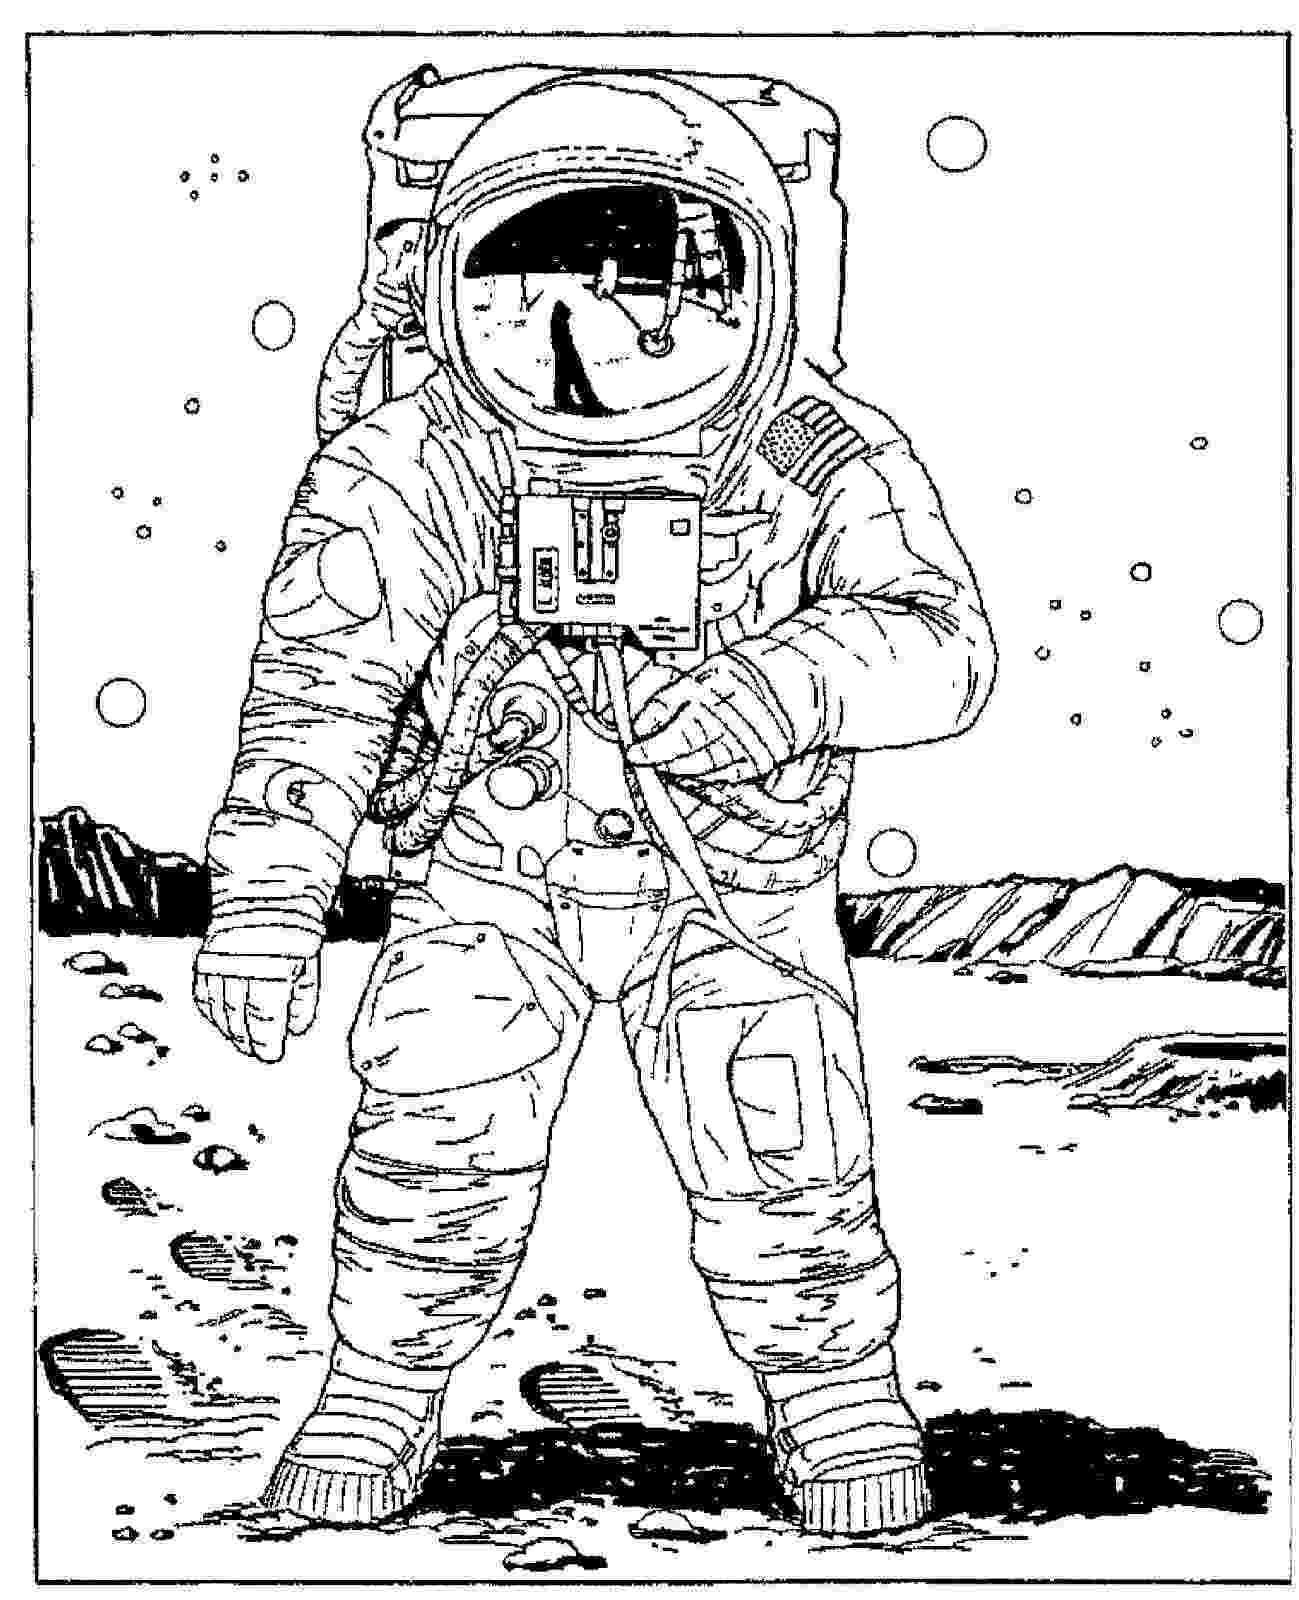 free space printables coloring pages astronaut coloring pages for preschool astronauts space coloring free printables pages